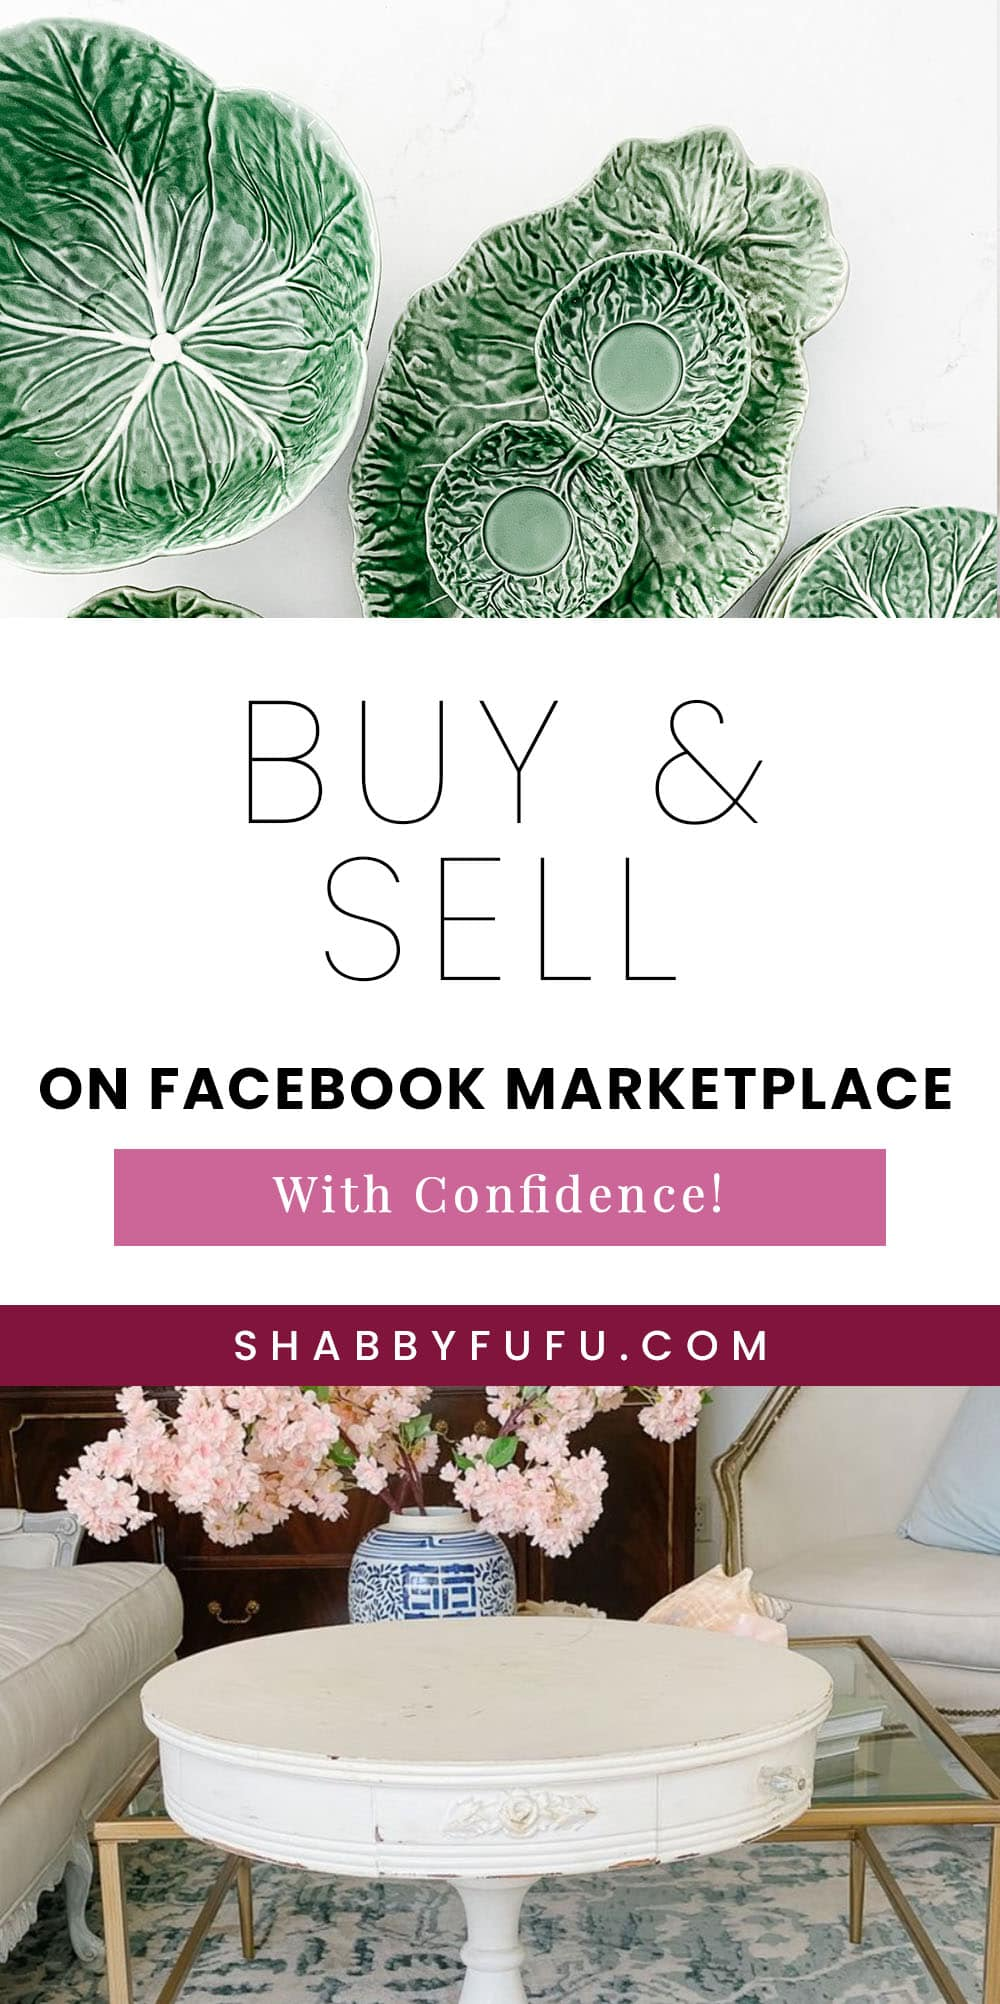 How To Buy And Sell On Facebook Marketplace With Confidence!